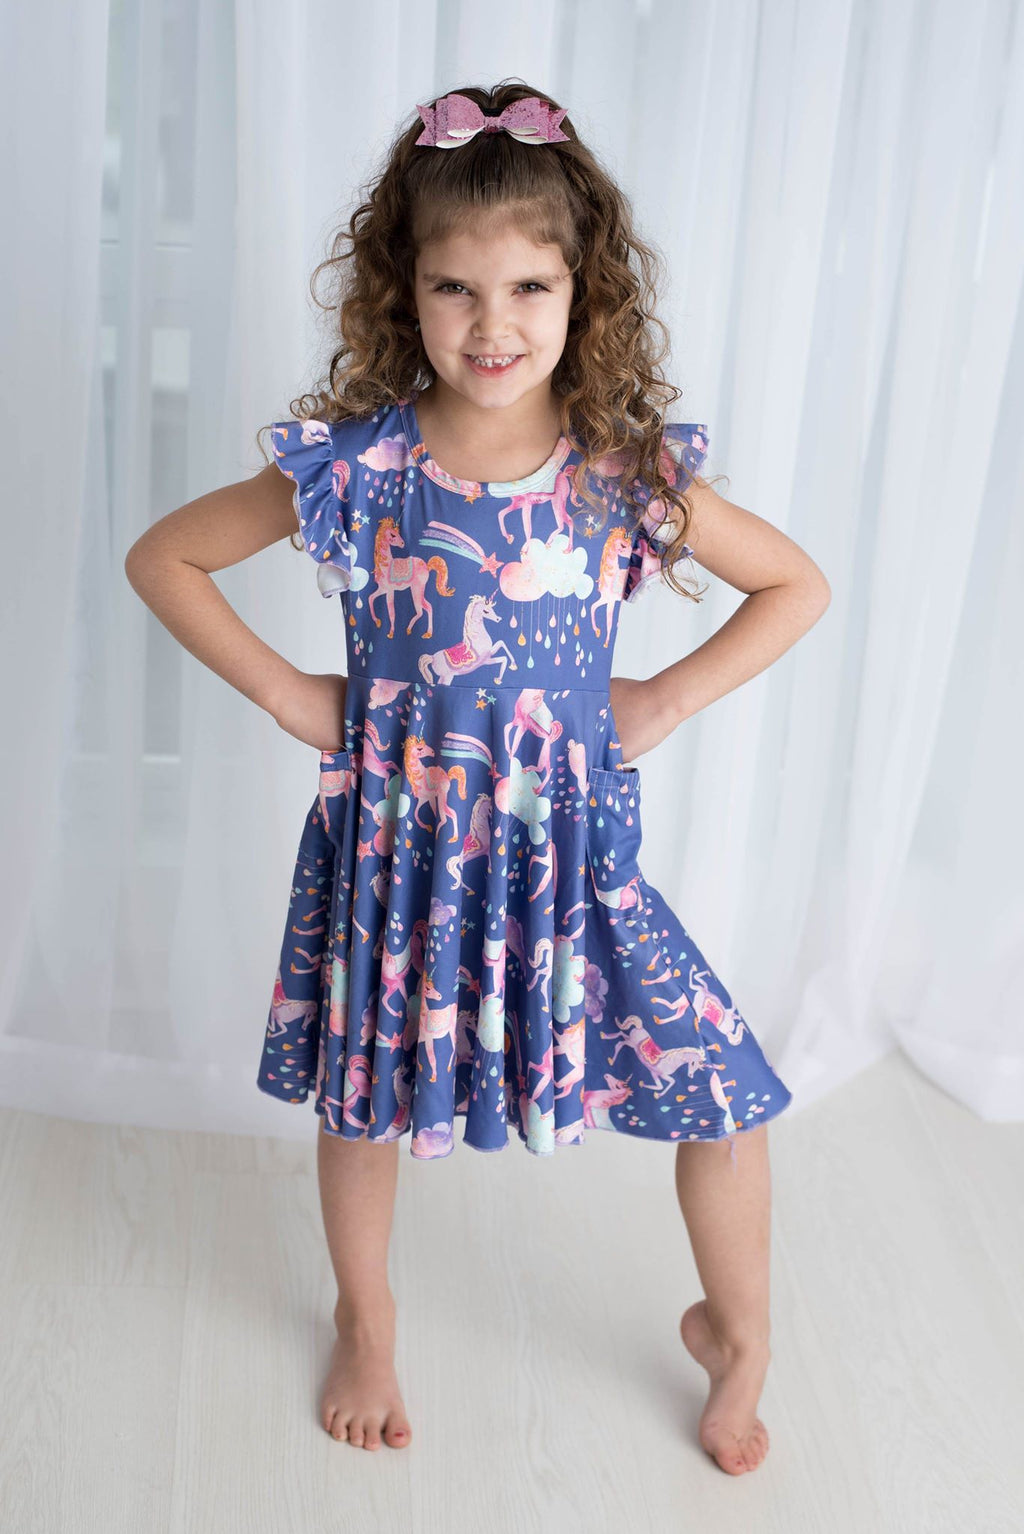 94f9d1259d UNICORN GLITTER DRESS WITH POCKETS - PREORDER